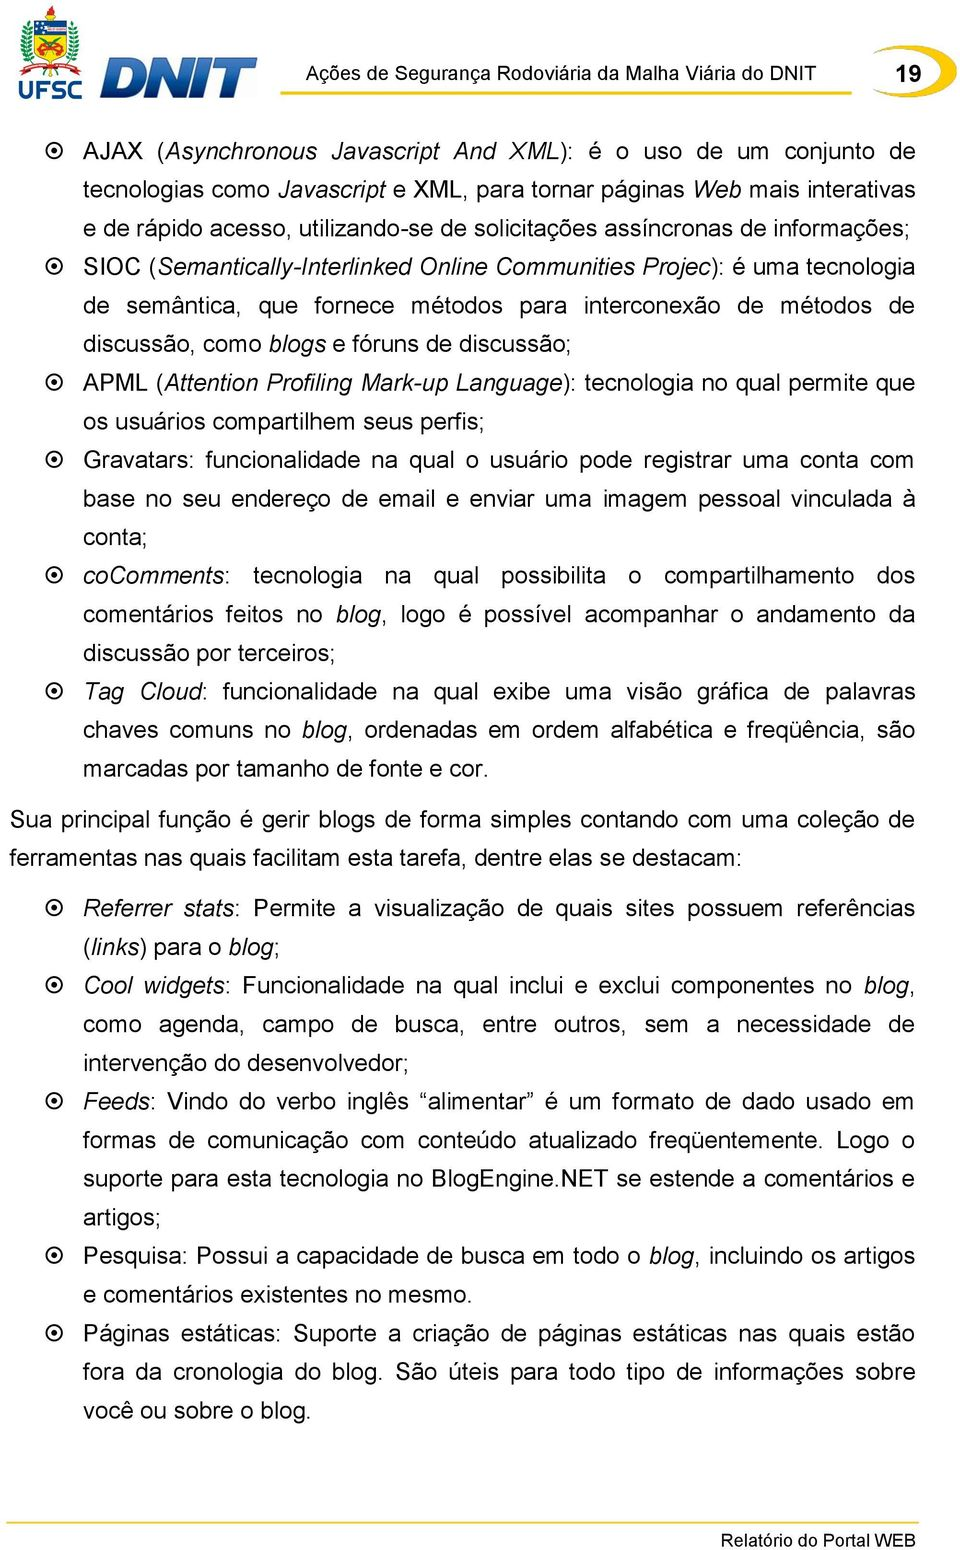 fóruns de discussão; APML (Attention Profiling Mark-up Language): tecnologia no qual permite que os usuários compartilhem seus perfis; Gravatars: funcionalidade na qual o usuário pode registrar uma